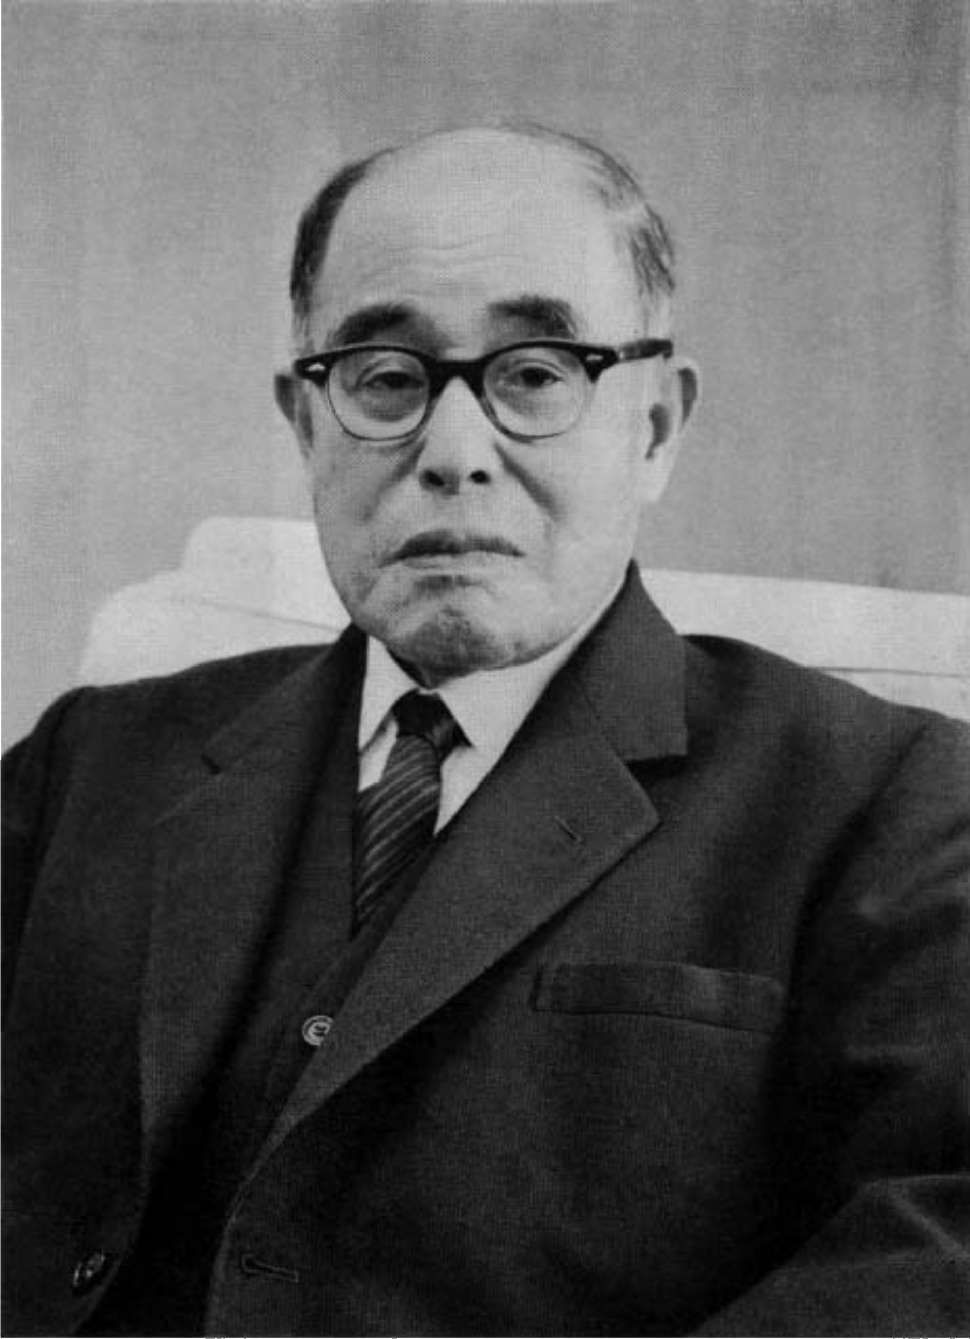 Daigoro YasukawaFounded the Japan Atomic Power Company in 1957. And President, Organizing Committee for the Games of  the XVIII Olympiad, Tokyo 1964